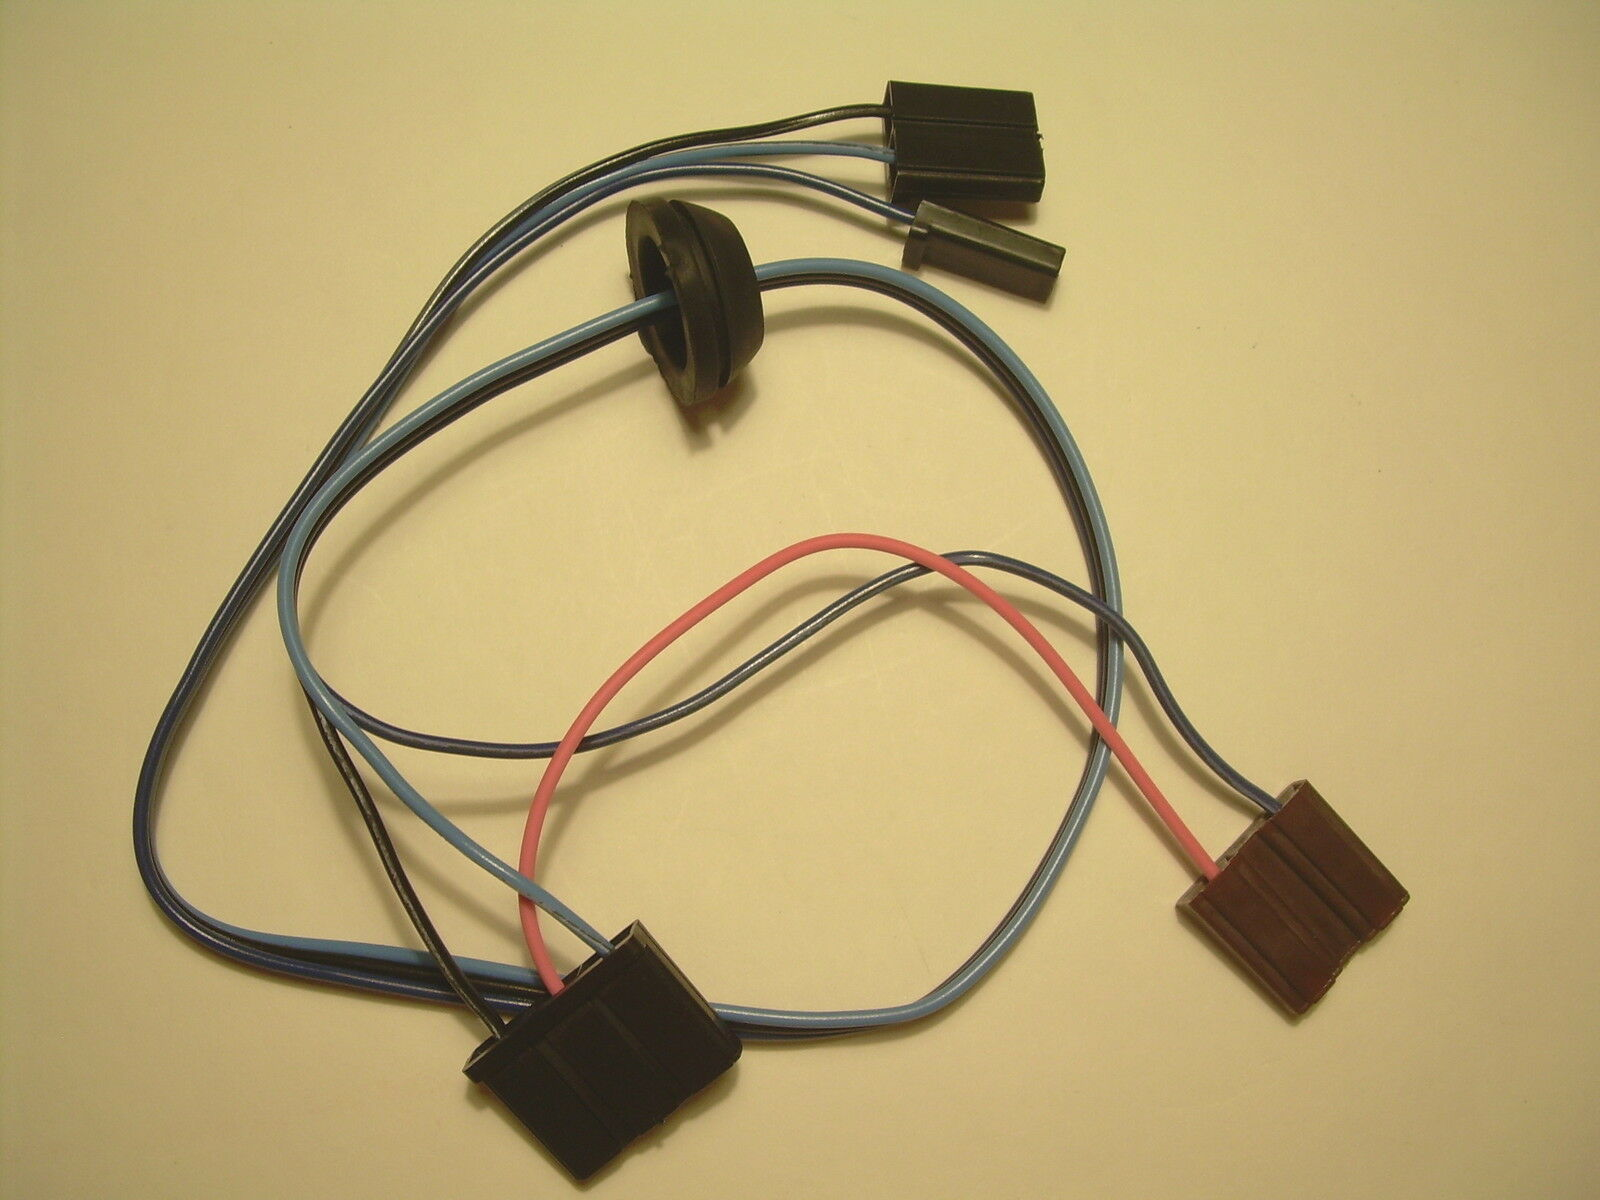 1964 Impala Wiring Harness Solutions Engine Belair Biscayne Windshield Wiper Switch Motor